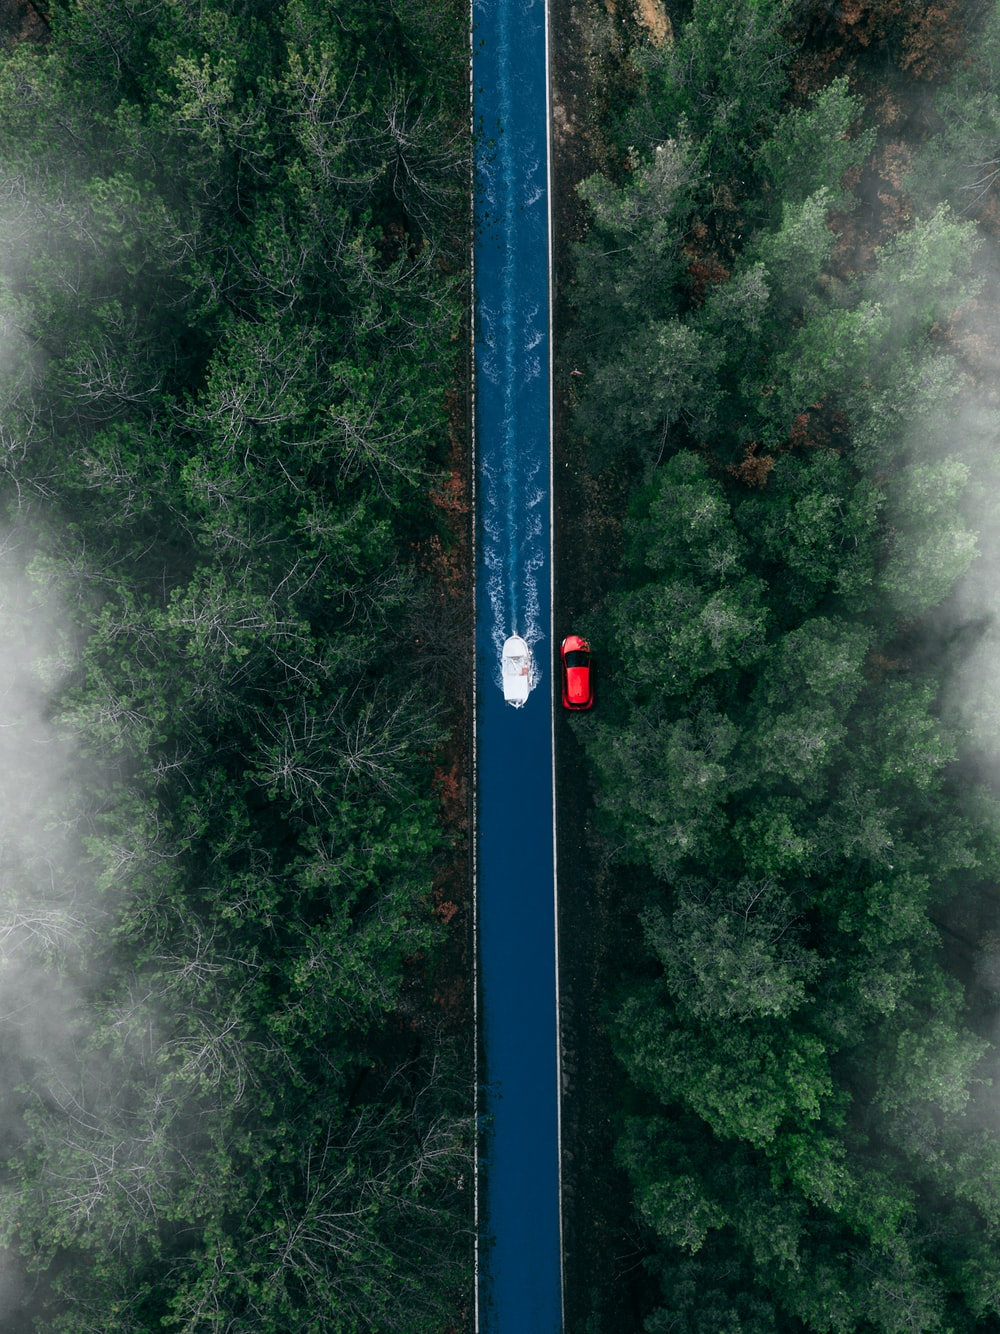 high angle photography of boat beside red vehicle